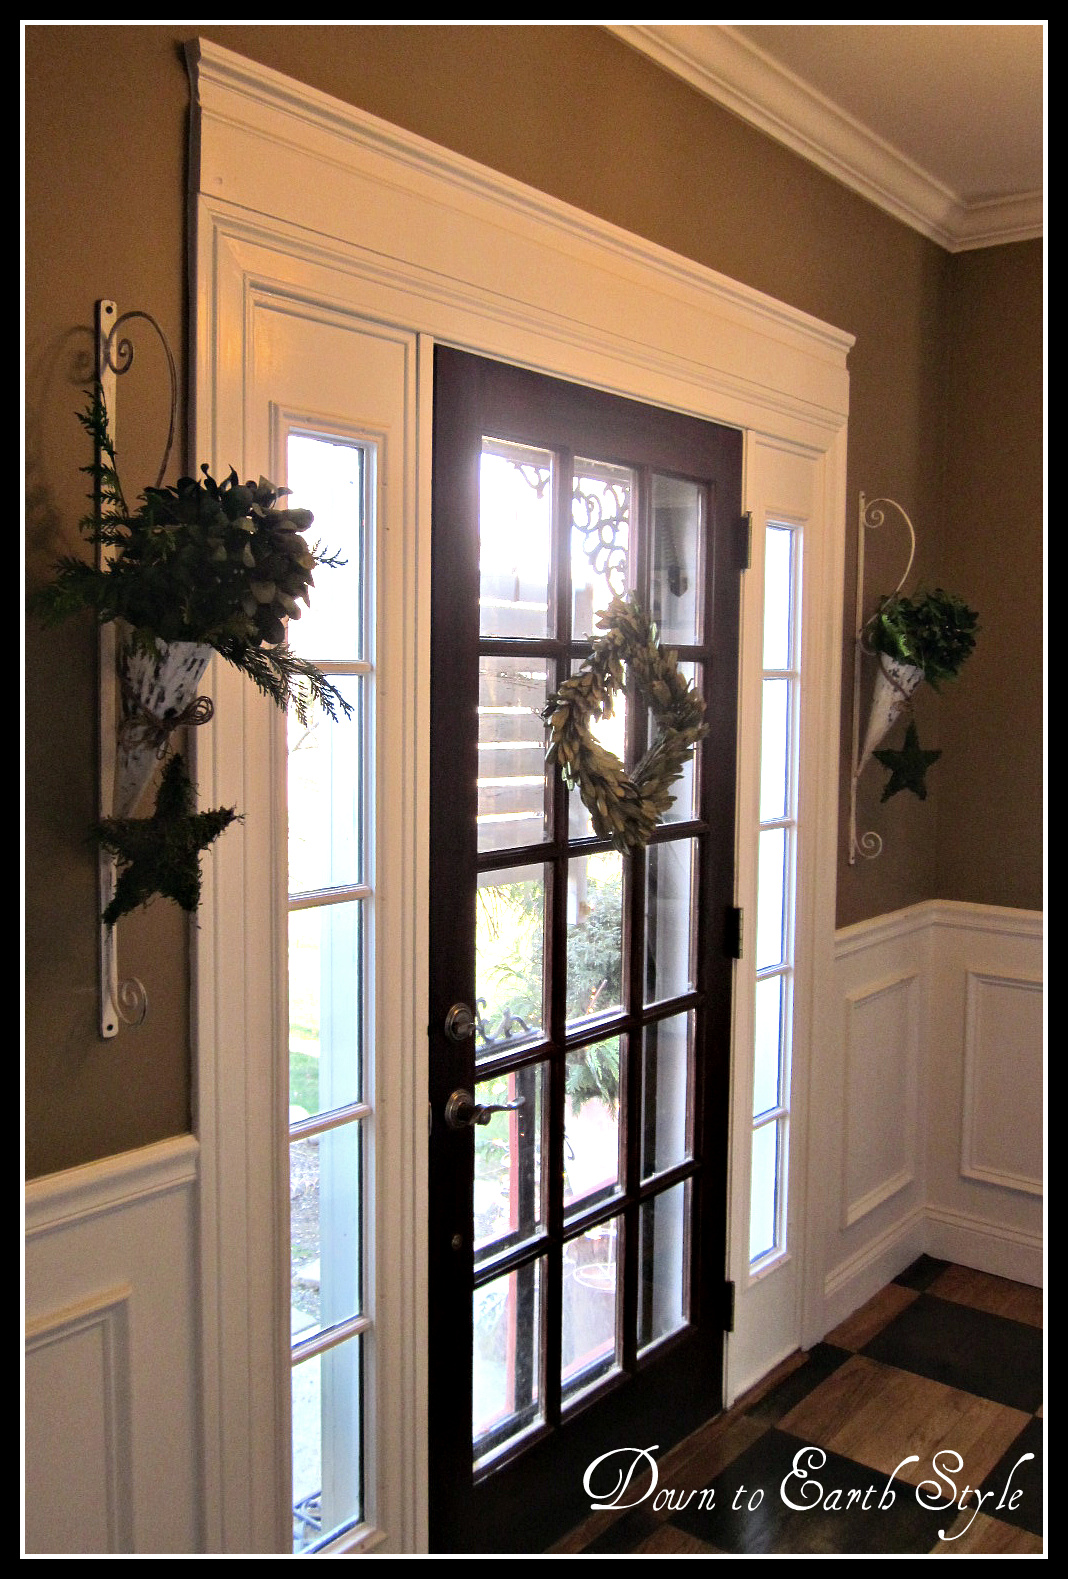 Let 39 s talk doors for House entry doors